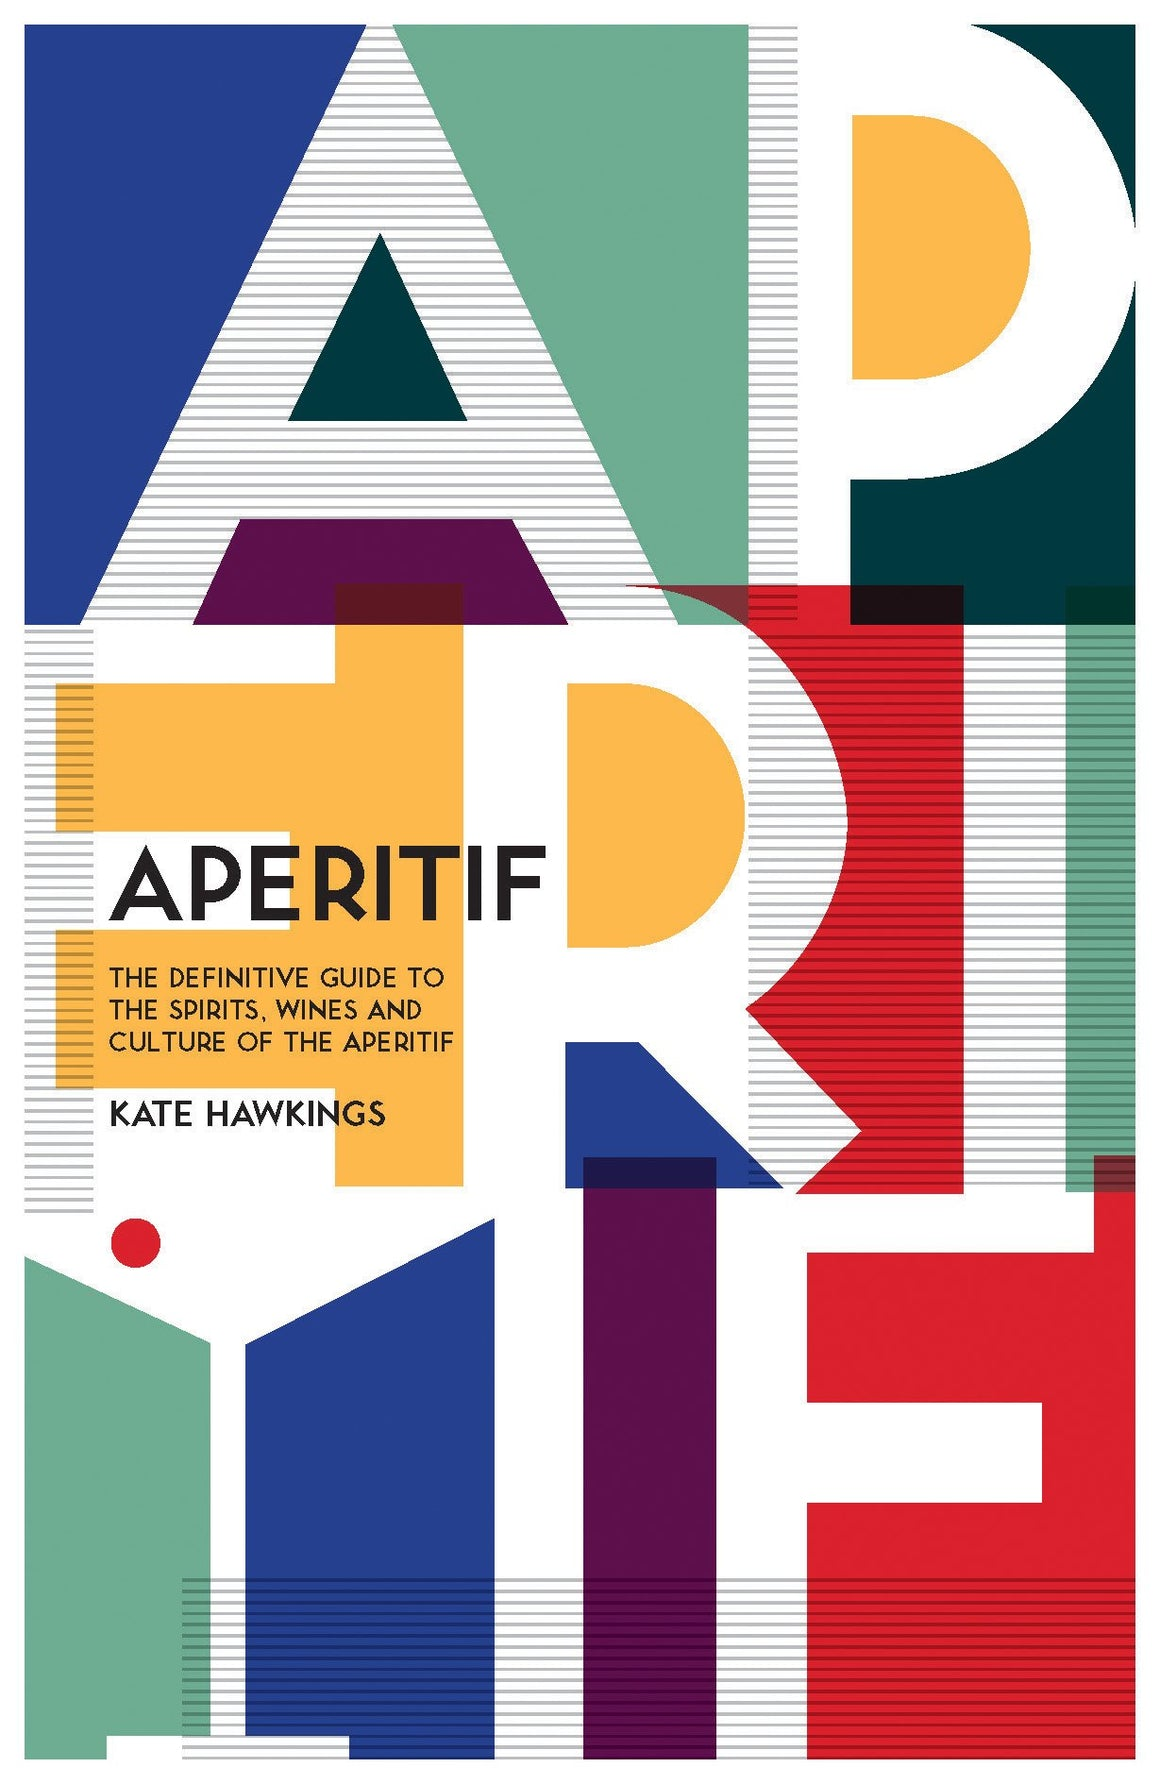 Kate Hawkings. Aperitif: A Spirited Guide to the Drinks, History and Culture of the Aperitif